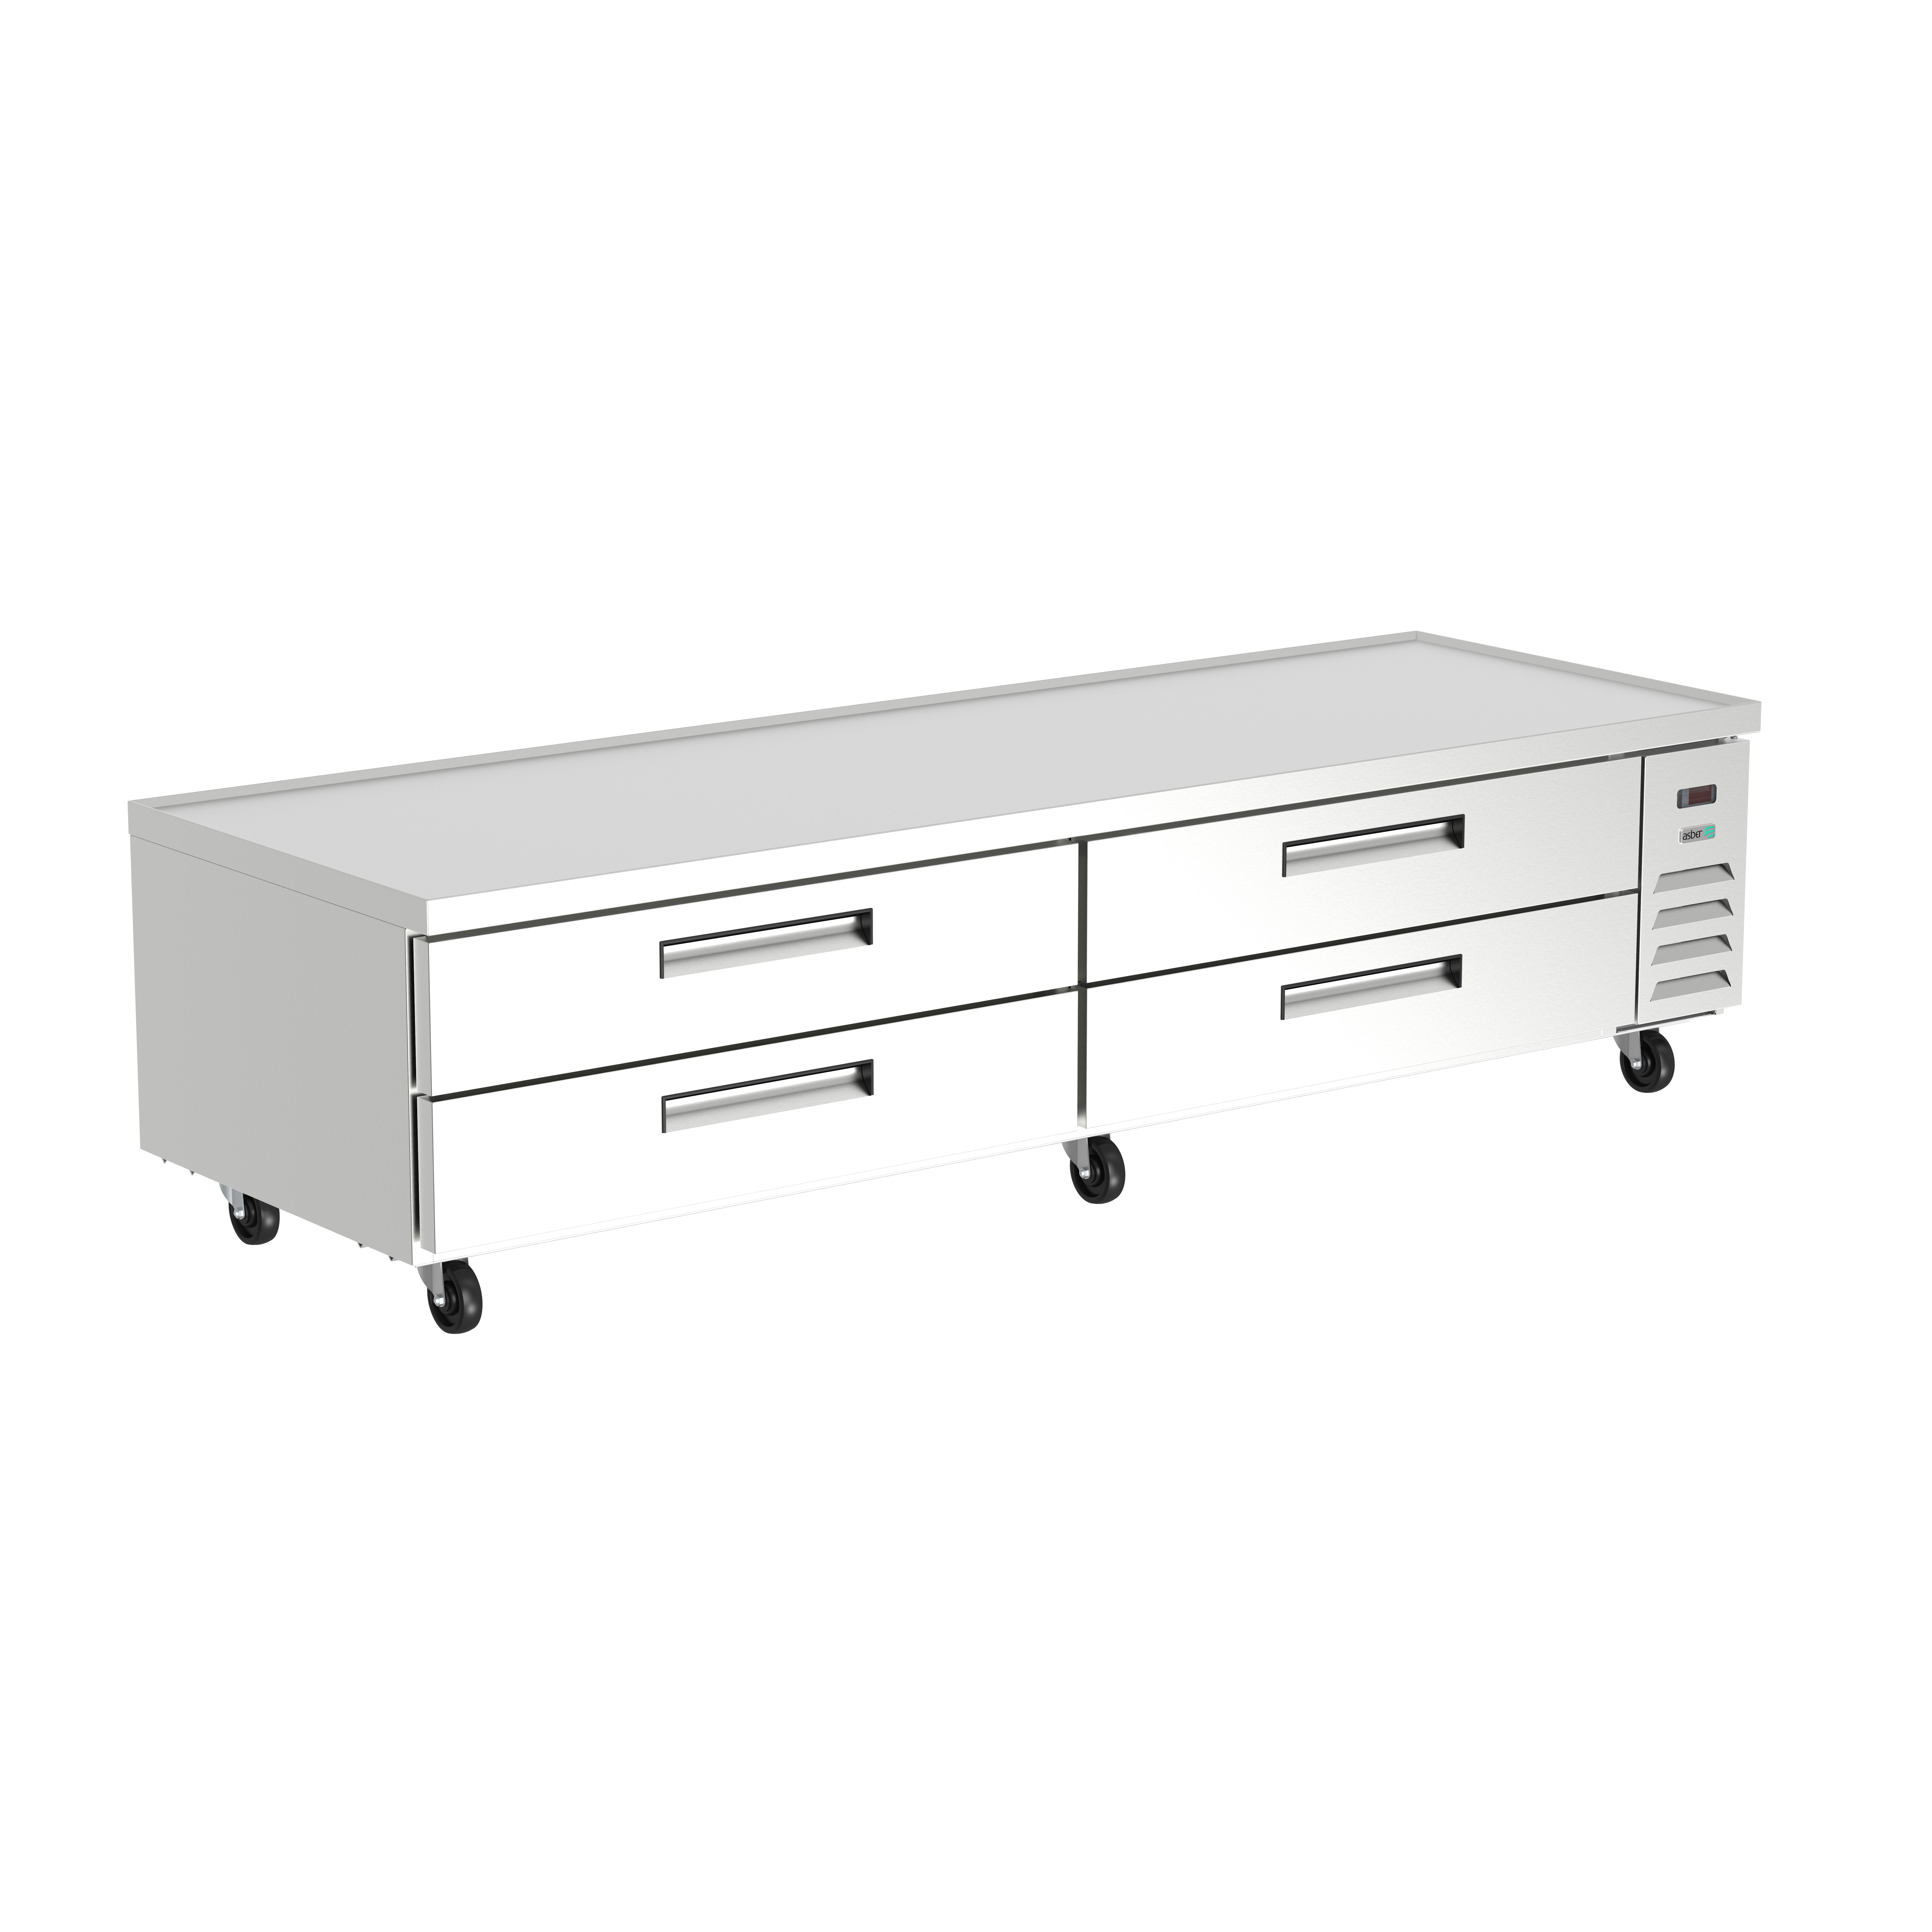 Asber ACBR-96 equipment stand, refrigerated base